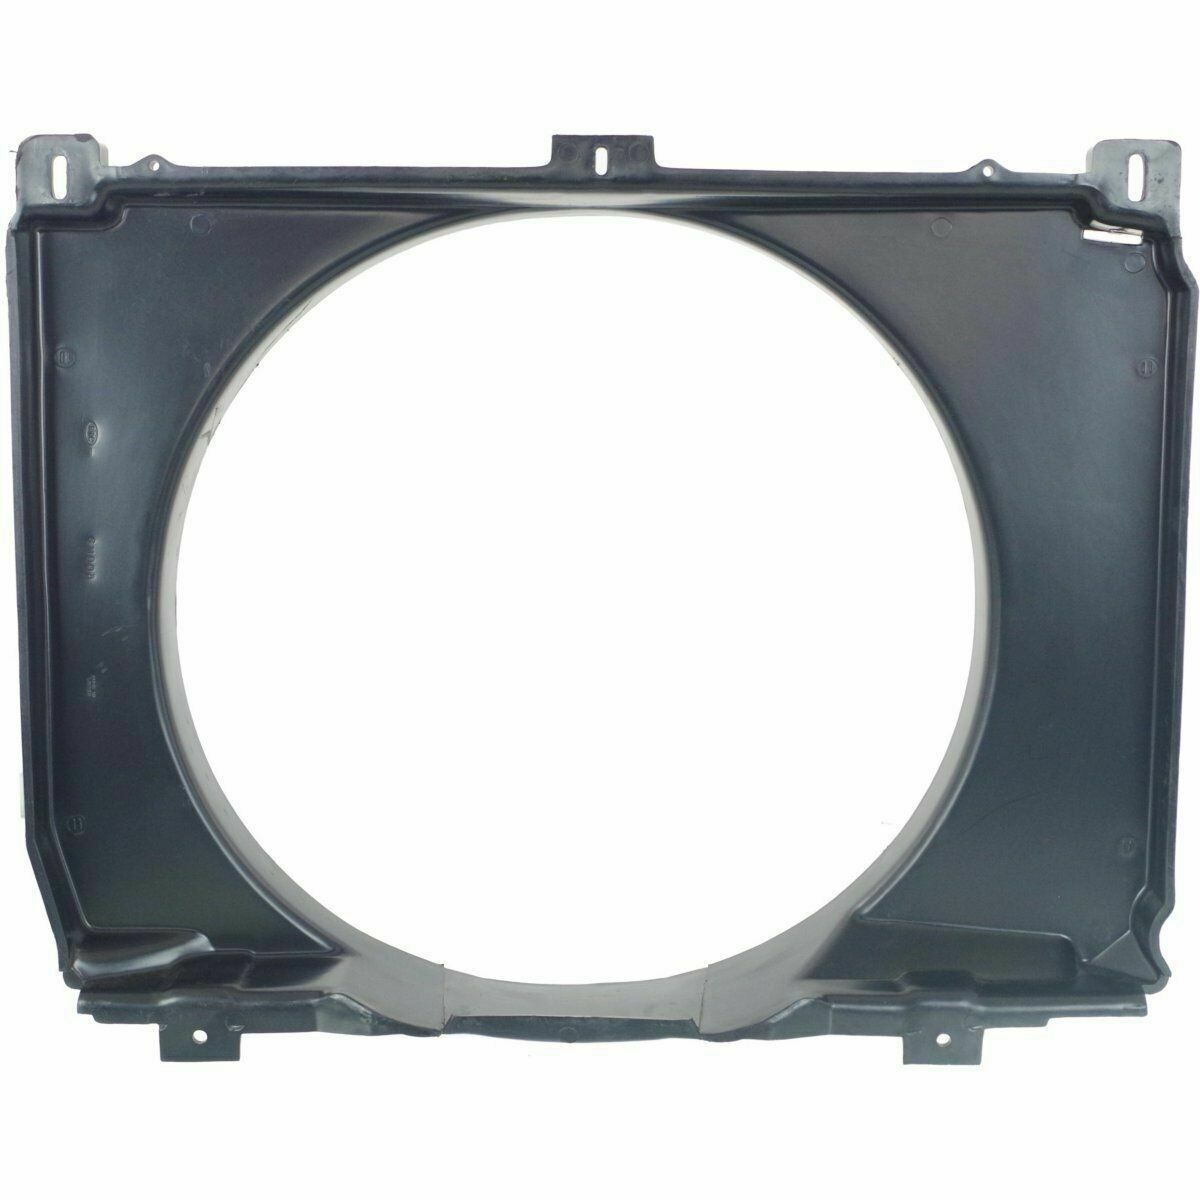 New Fan Shroud for GMC C25 GM3110122 1978 to 1980